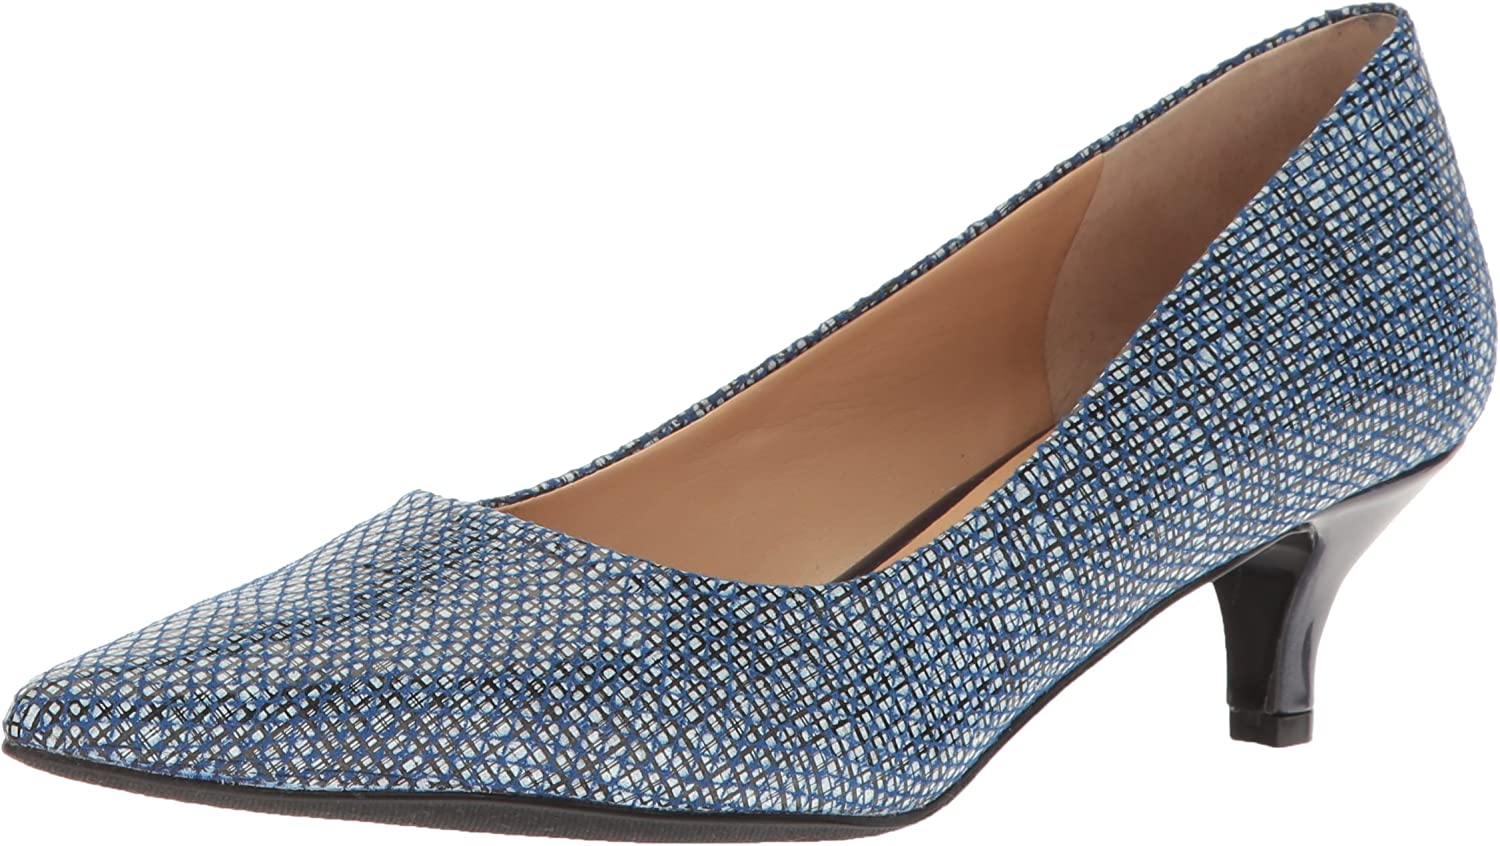 Tredters Women's Paulina Dress Pump